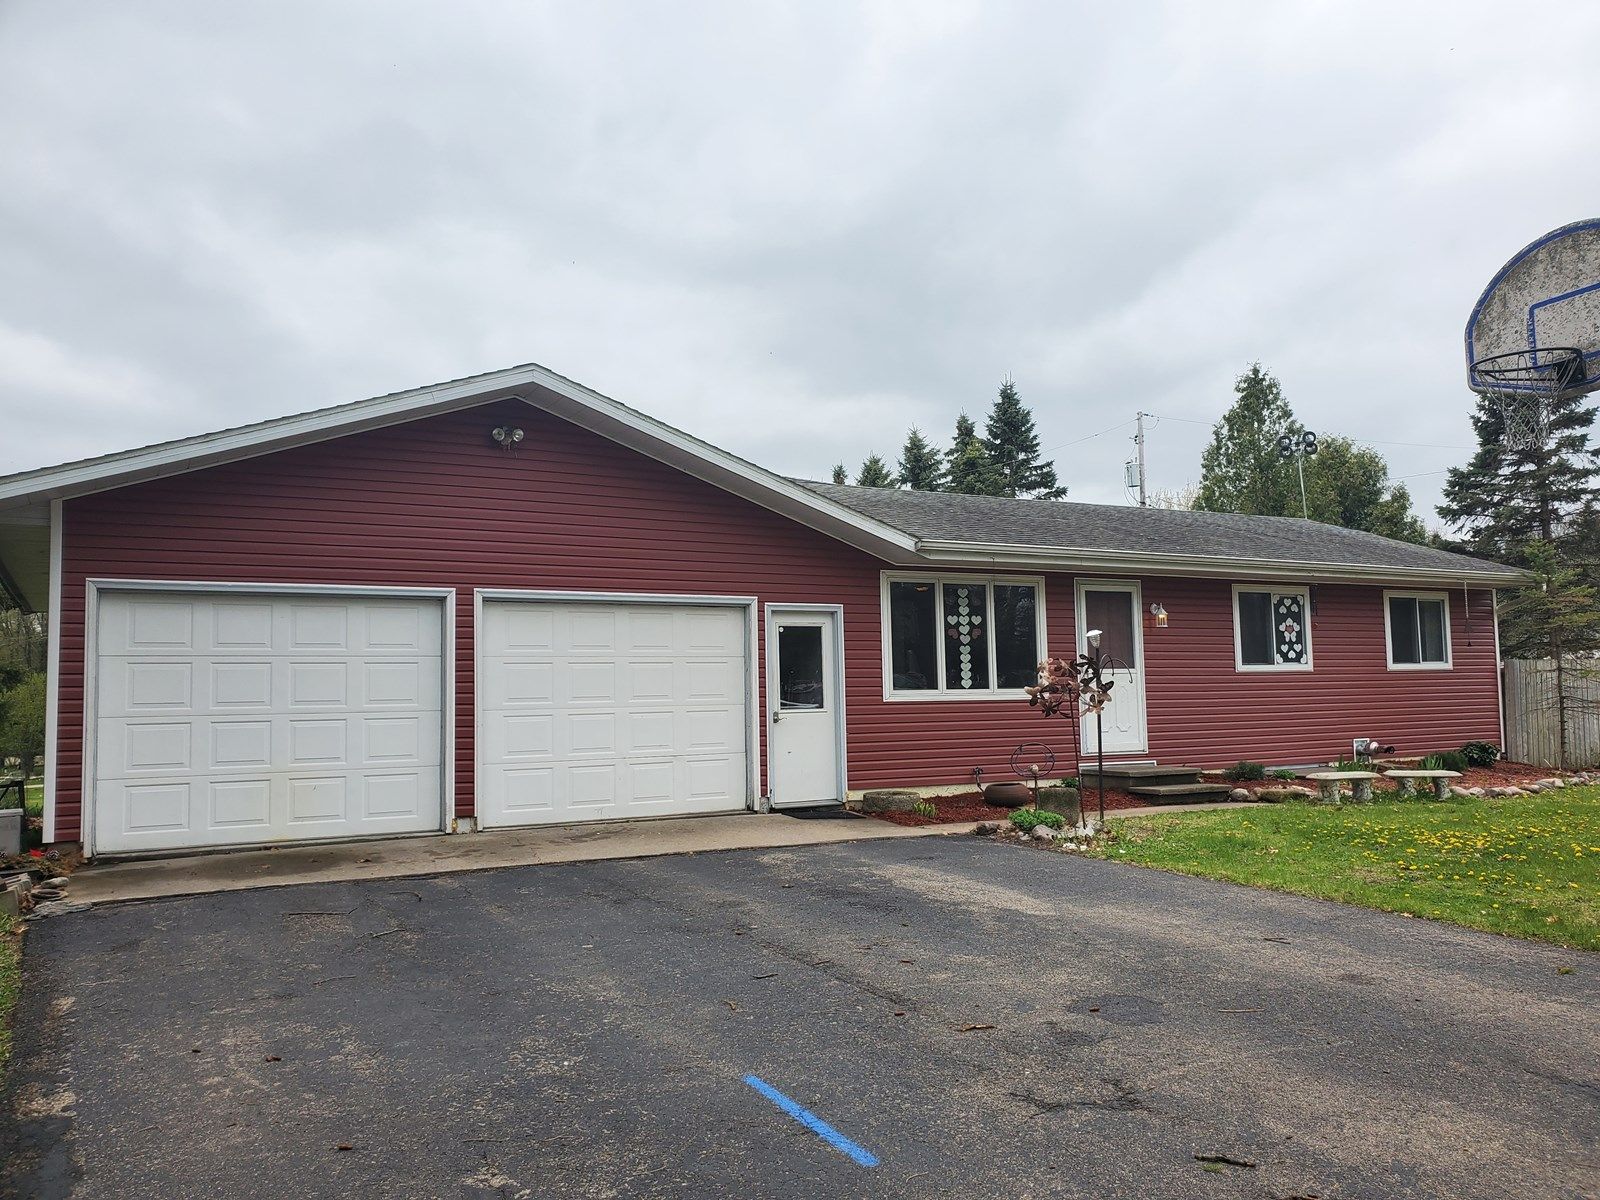 Home for Sale in the City of Weyauwega